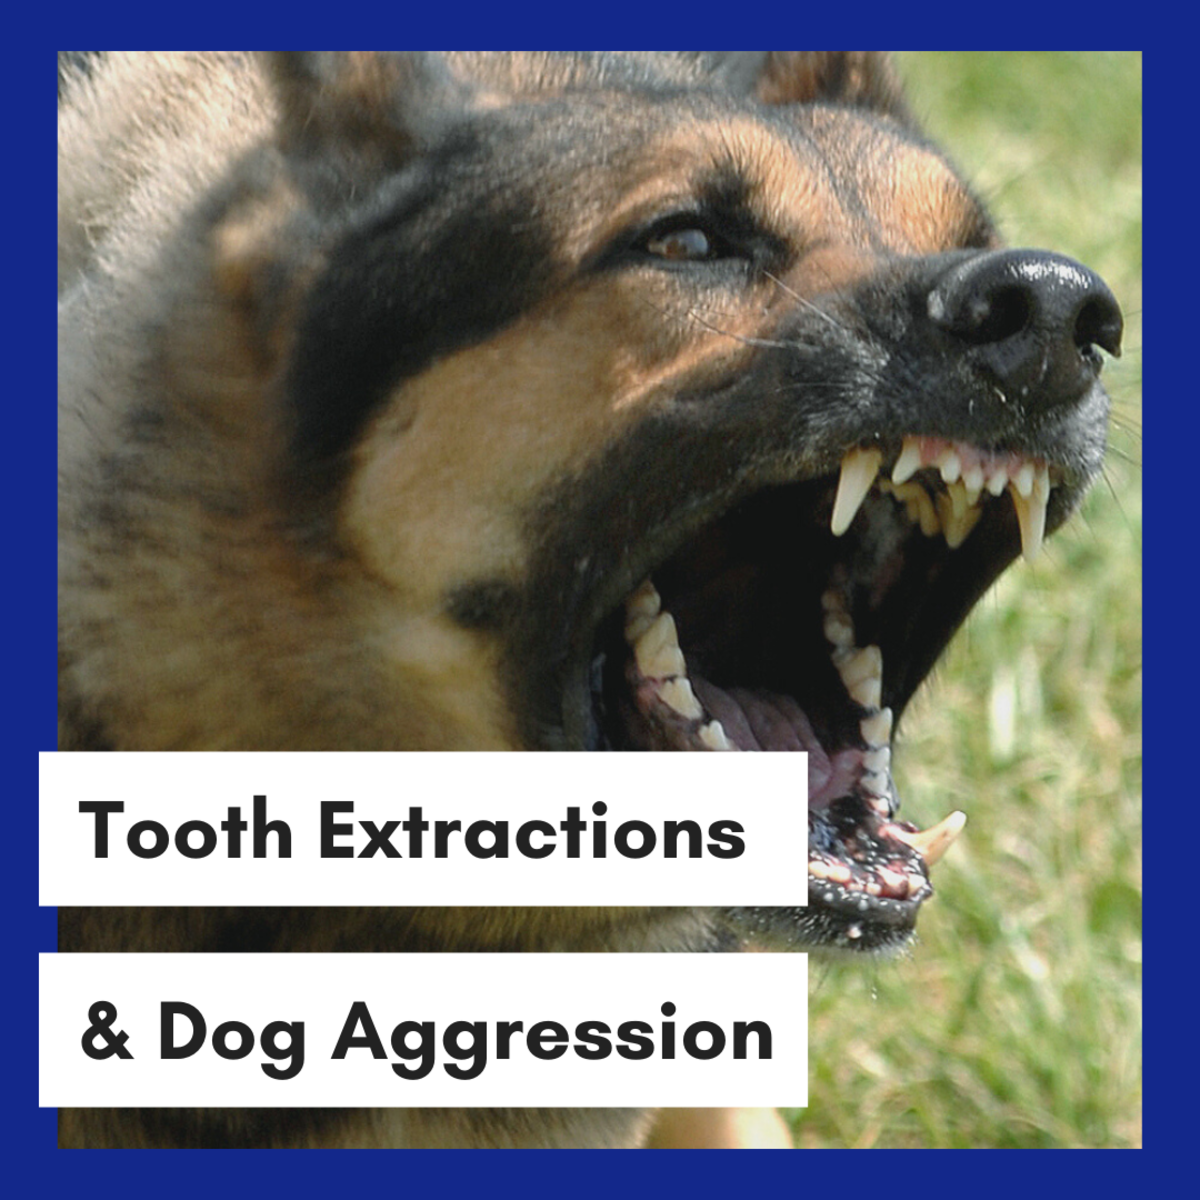 Removing Teeth in Aggressive Dogs: Solution or Band-Aid?